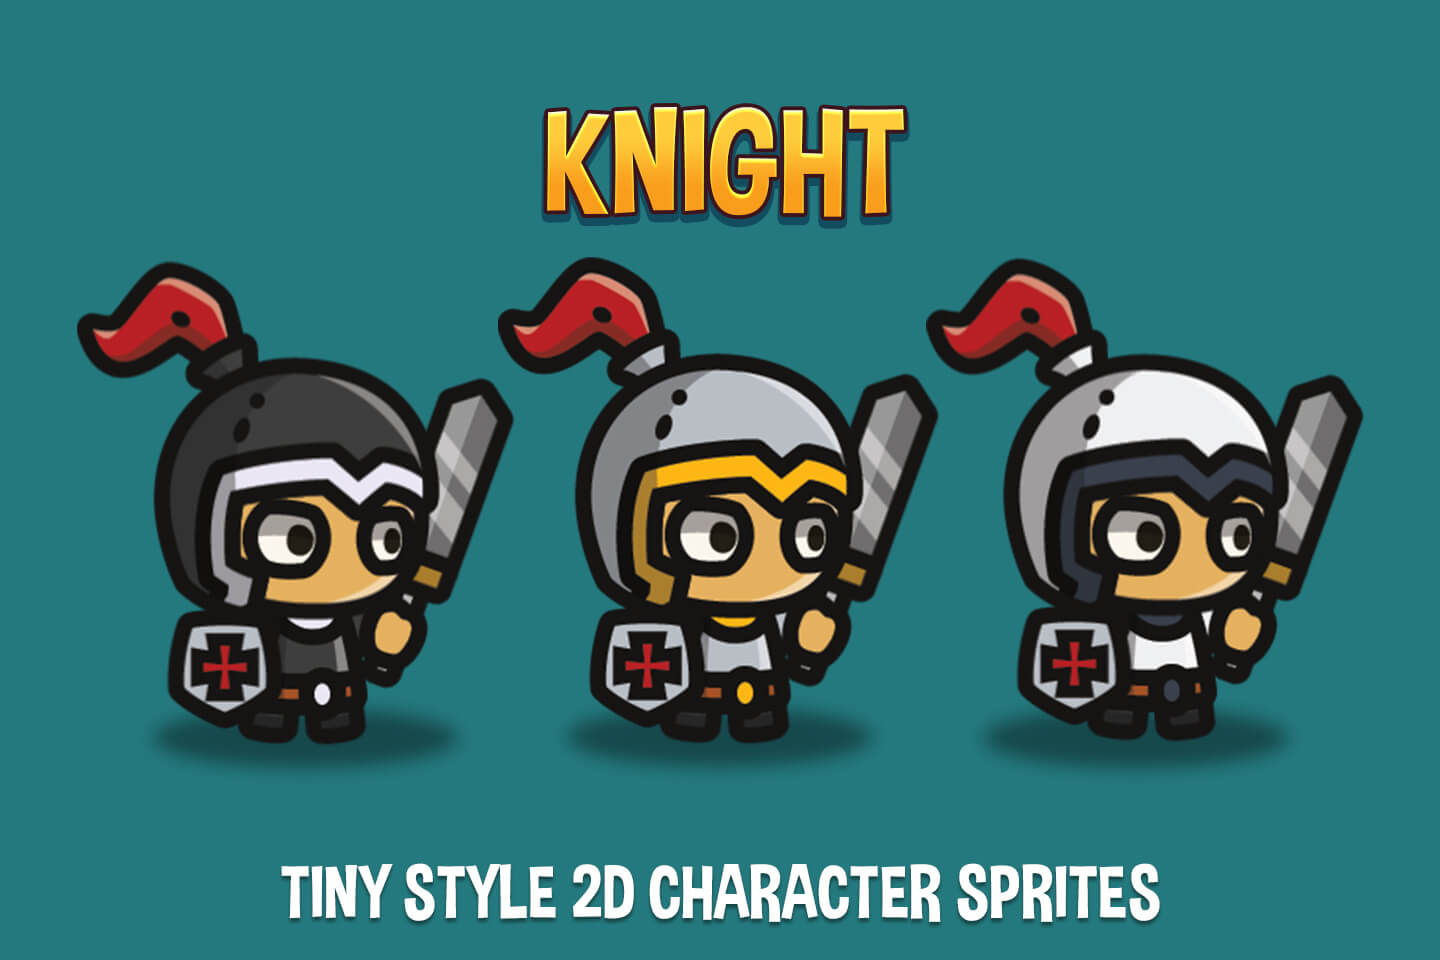 Knight Tiny Style 2D Character Sprites - CraftPix net